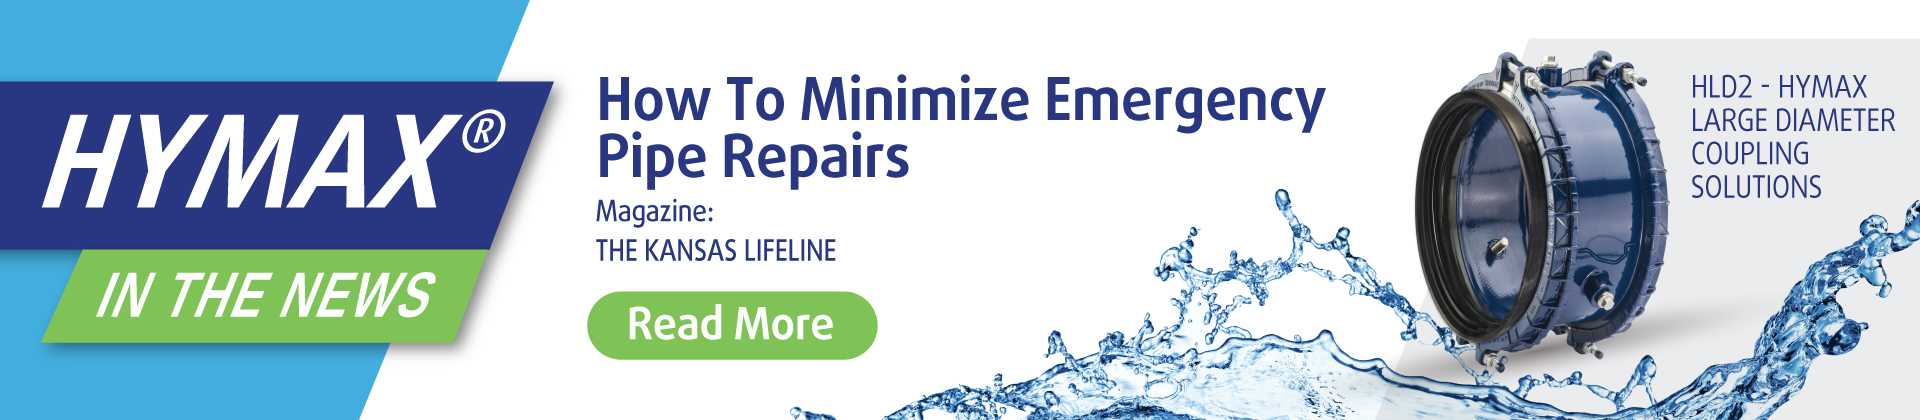 Minimize Emergency Pipe Repair